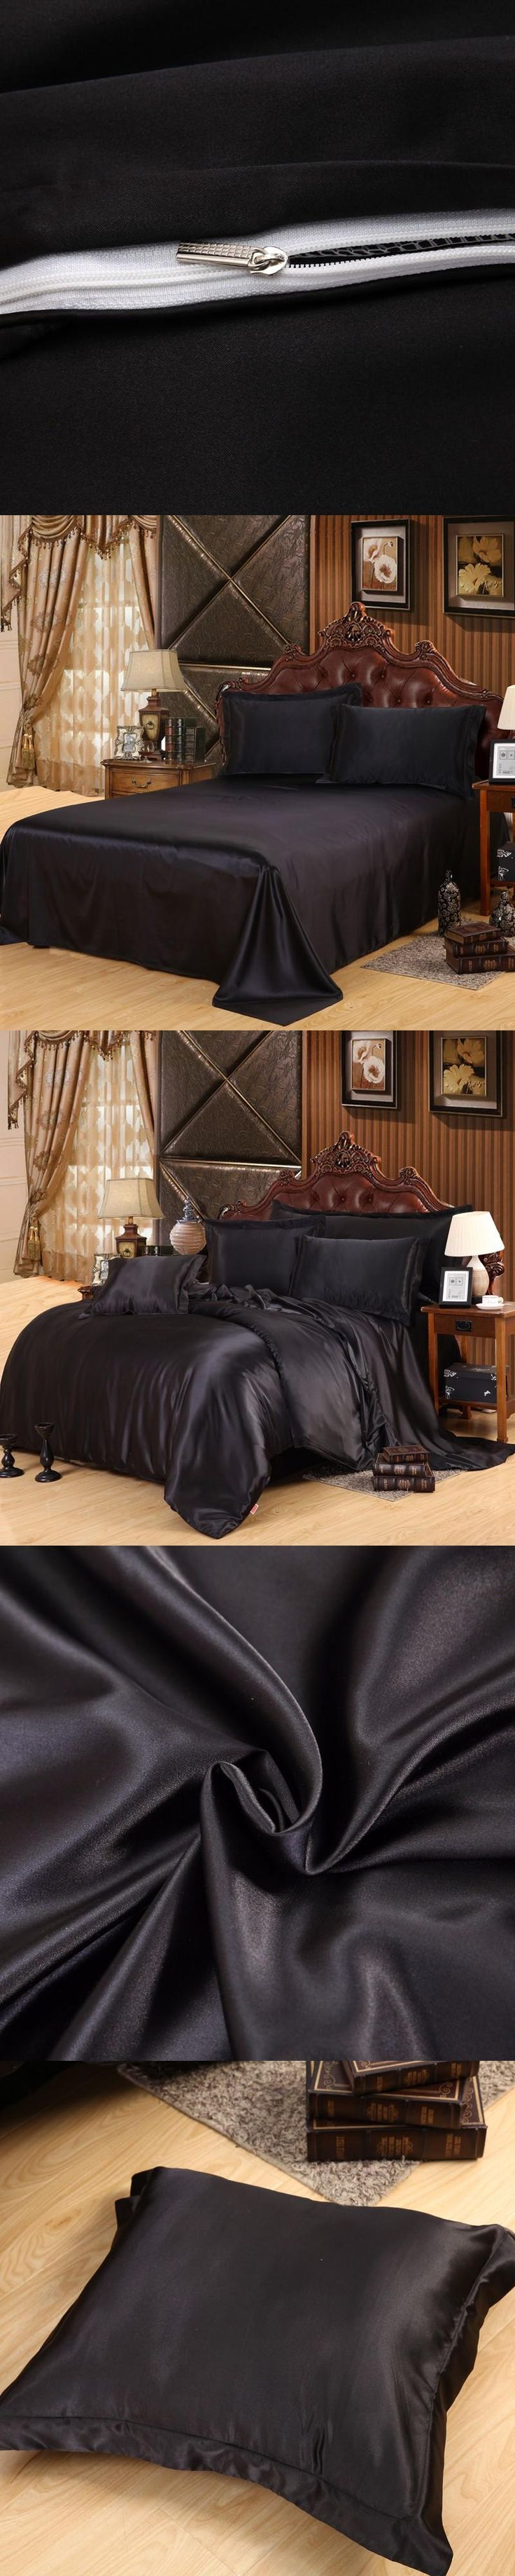 WINLIFE Custom-made Black Bedding Sets Solid Satin 4 Pcs Queen/King Size Home Bedclothes Bed Linen Duvet Cover Set Bed Sheet